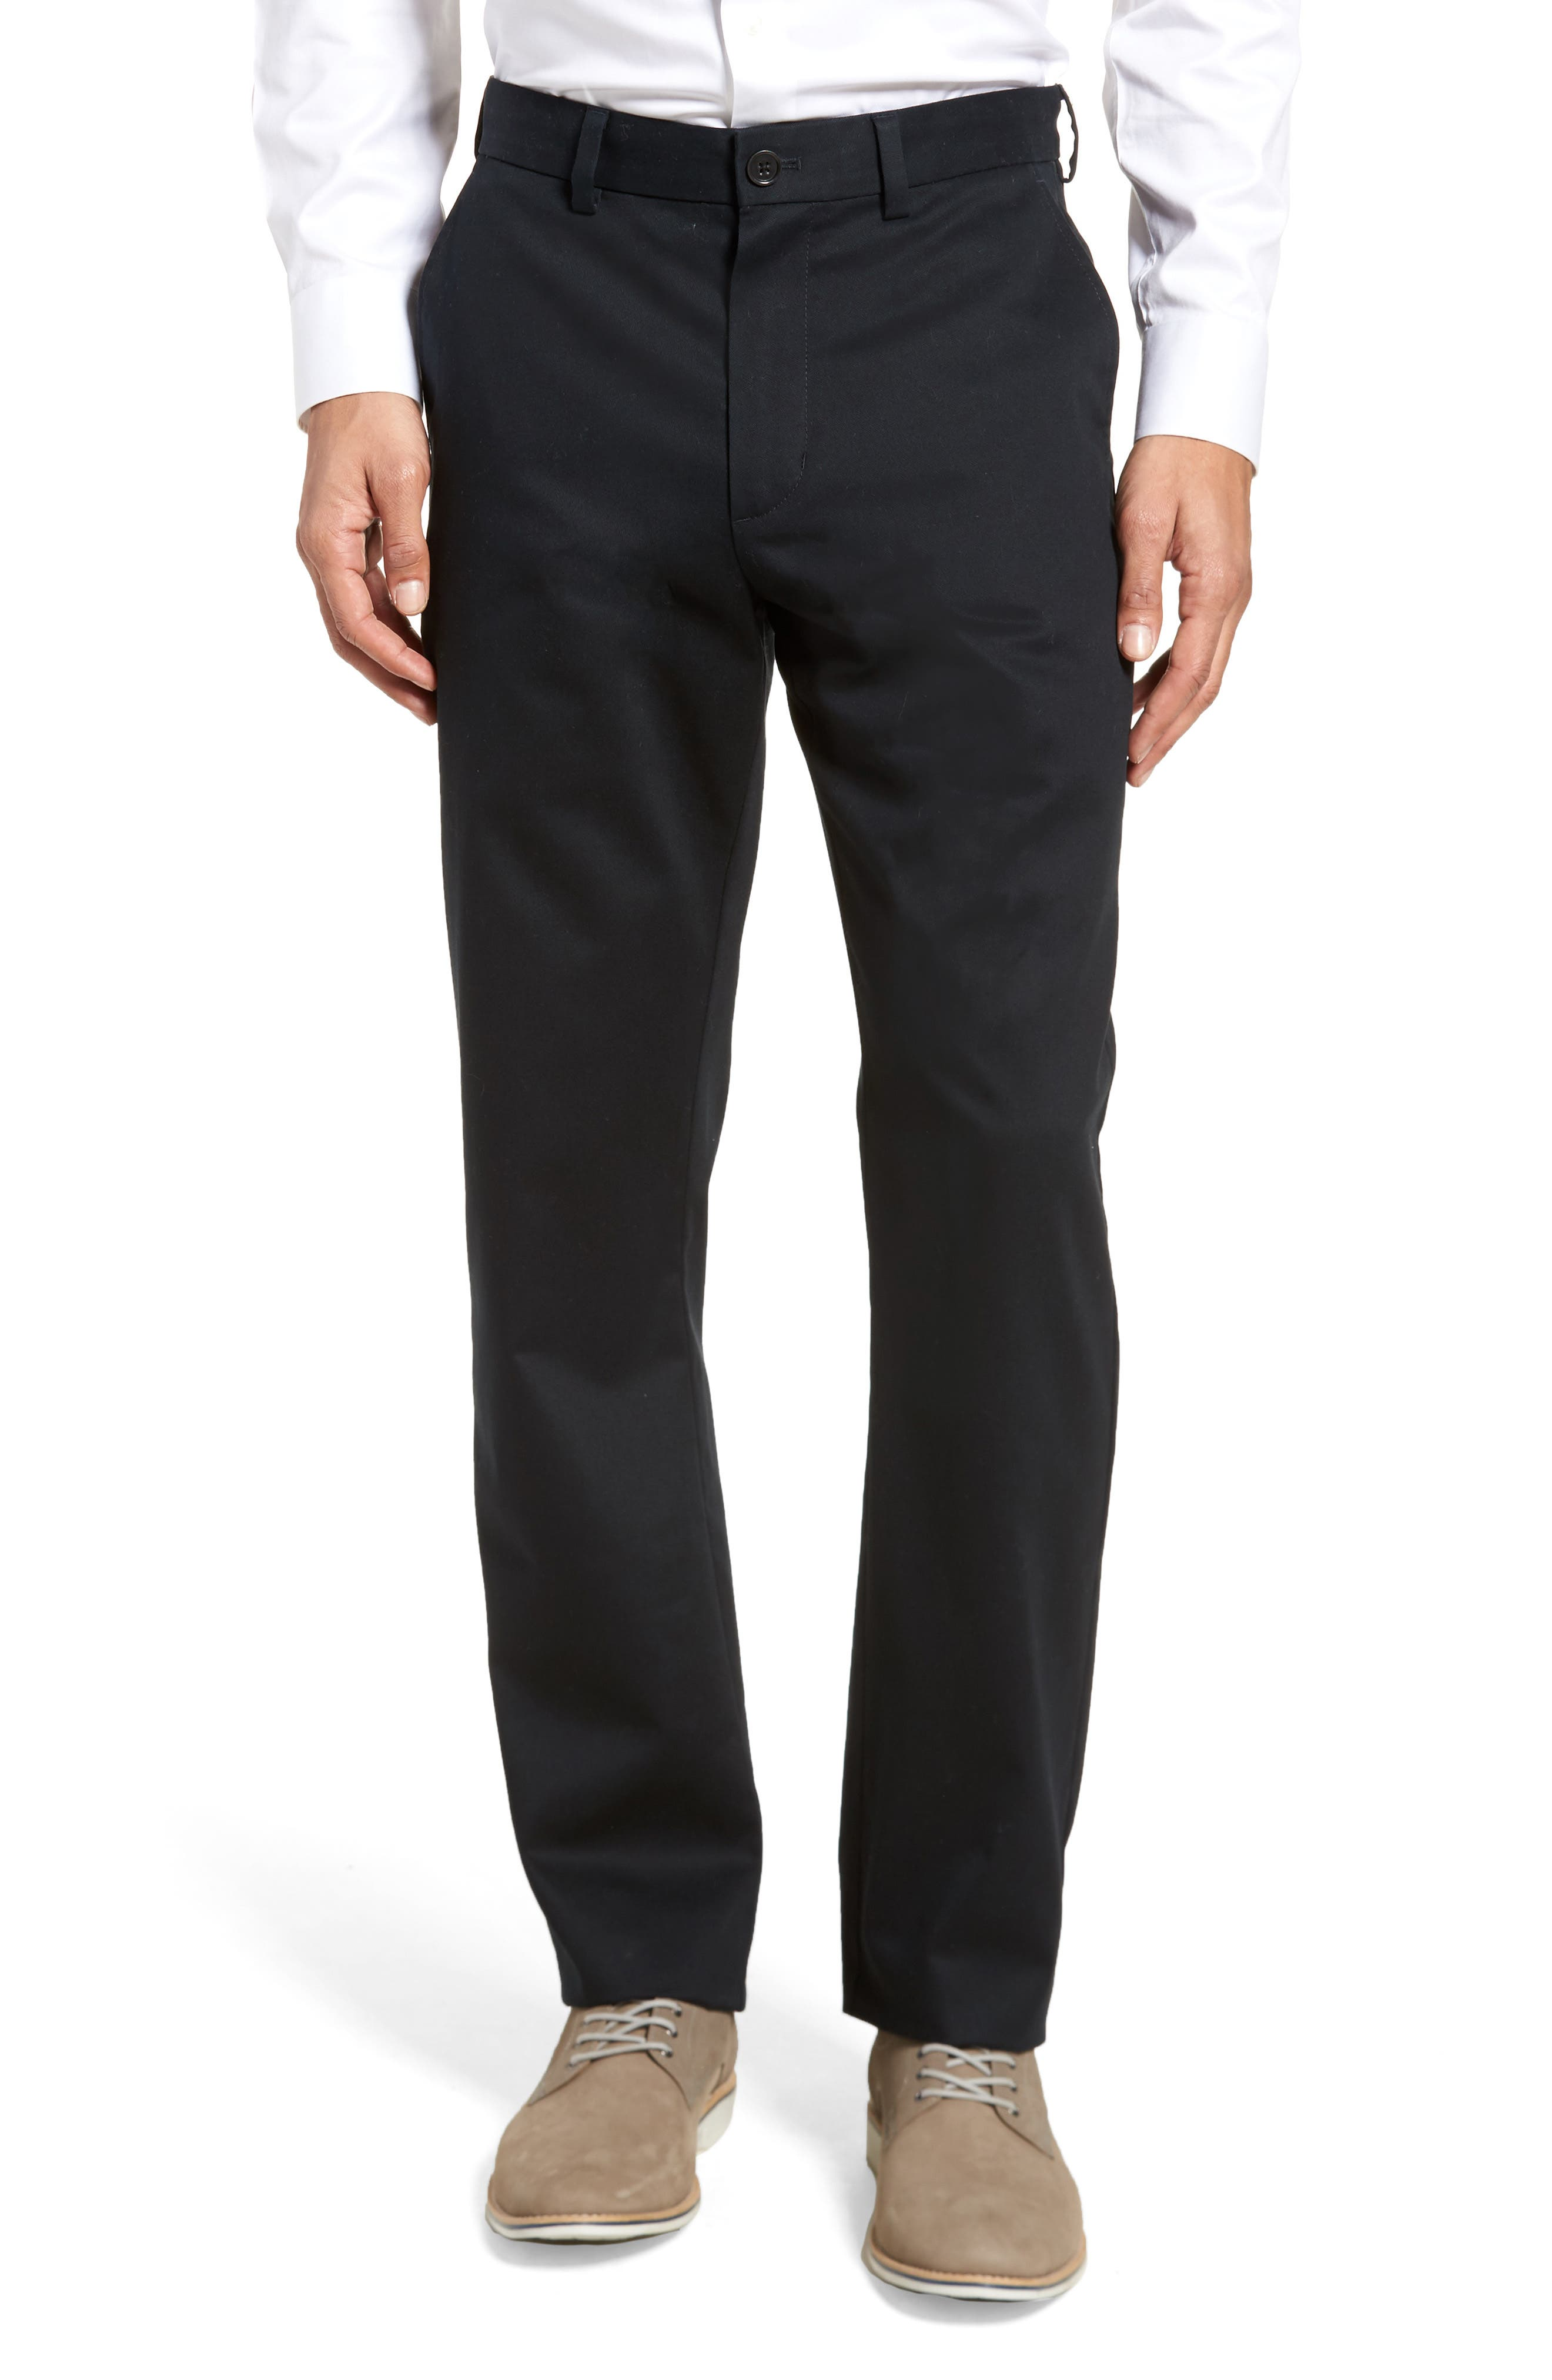 NORDSTROM MEN'S SHOP Wrinkle Free Straight Leg Chinos, Main, color, ANTHRACITE